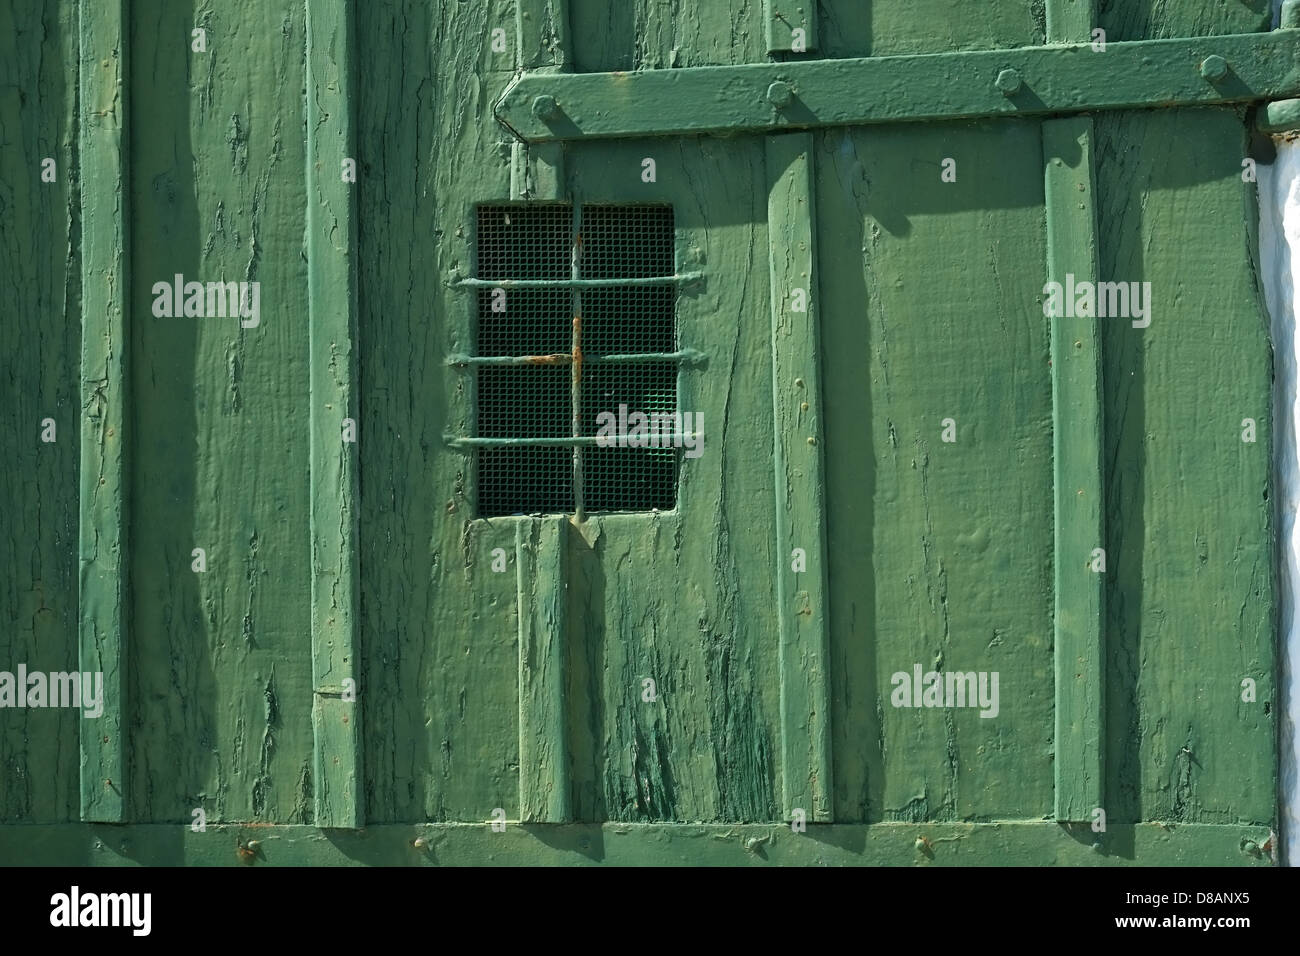 Barred window in green boathouse door Menorca, Spain - Stock Image